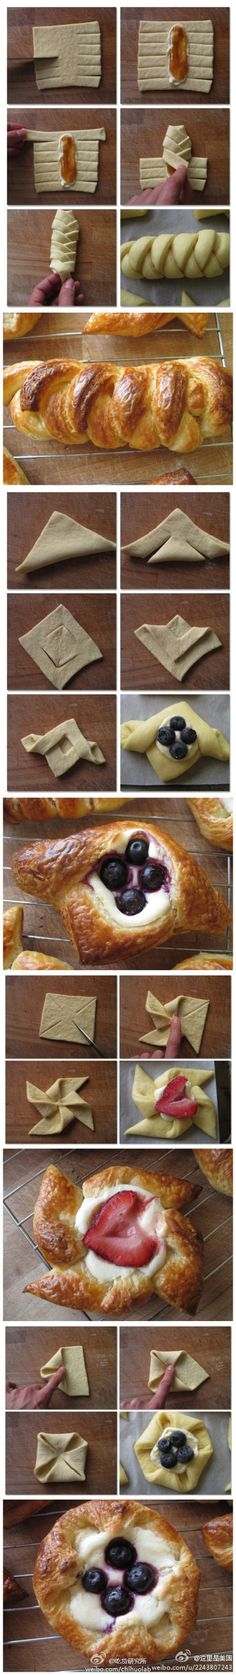 Ideas with pastry